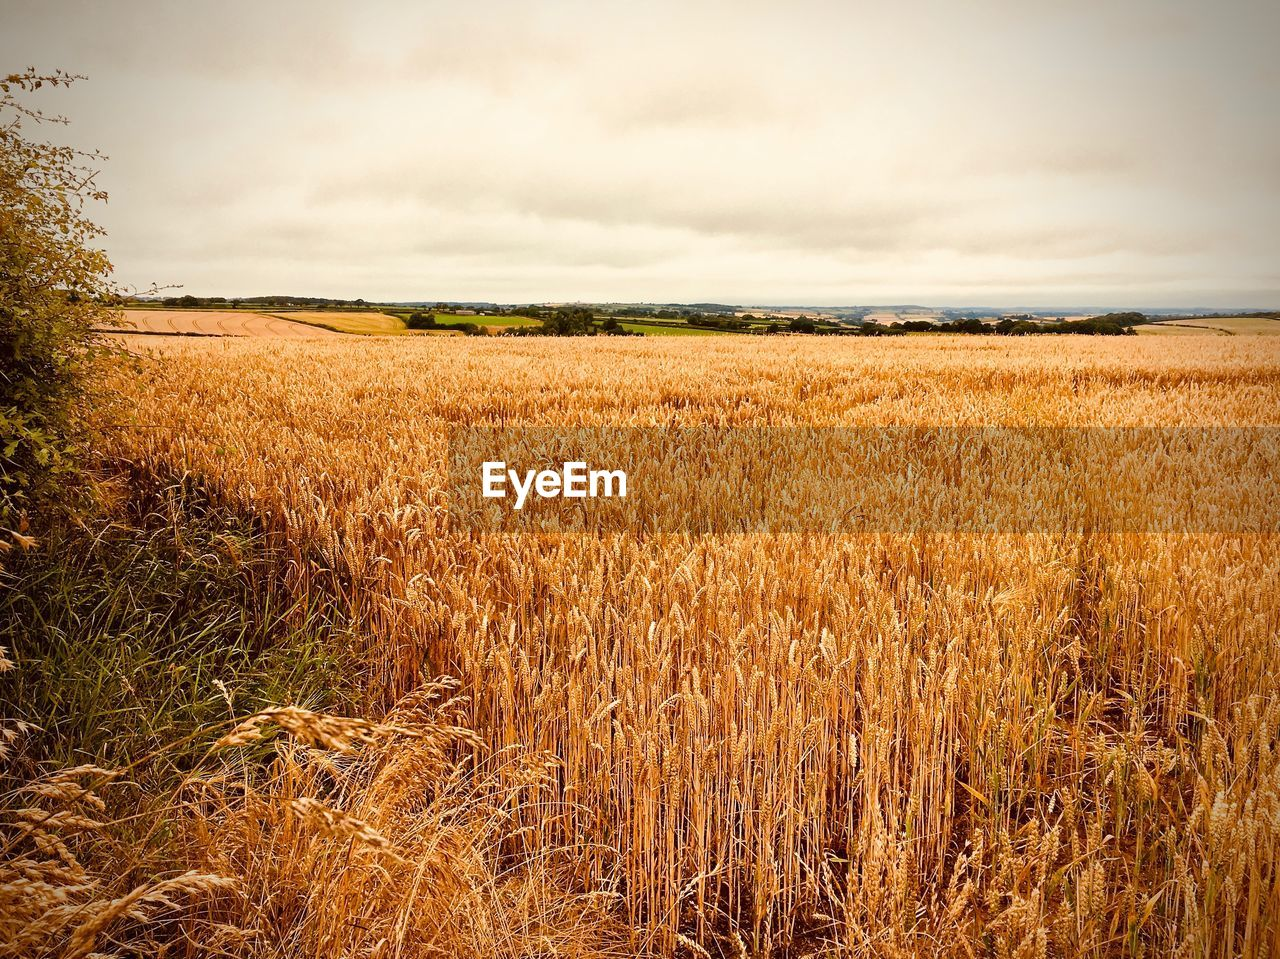 field, landscape, agriculture, nature, cereal plant, sky, growth, crop, tranquility, cloud - sky, no people, wheat, beauty in nature, rural scene, tranquil scene, outdoors, scenics, day, grass